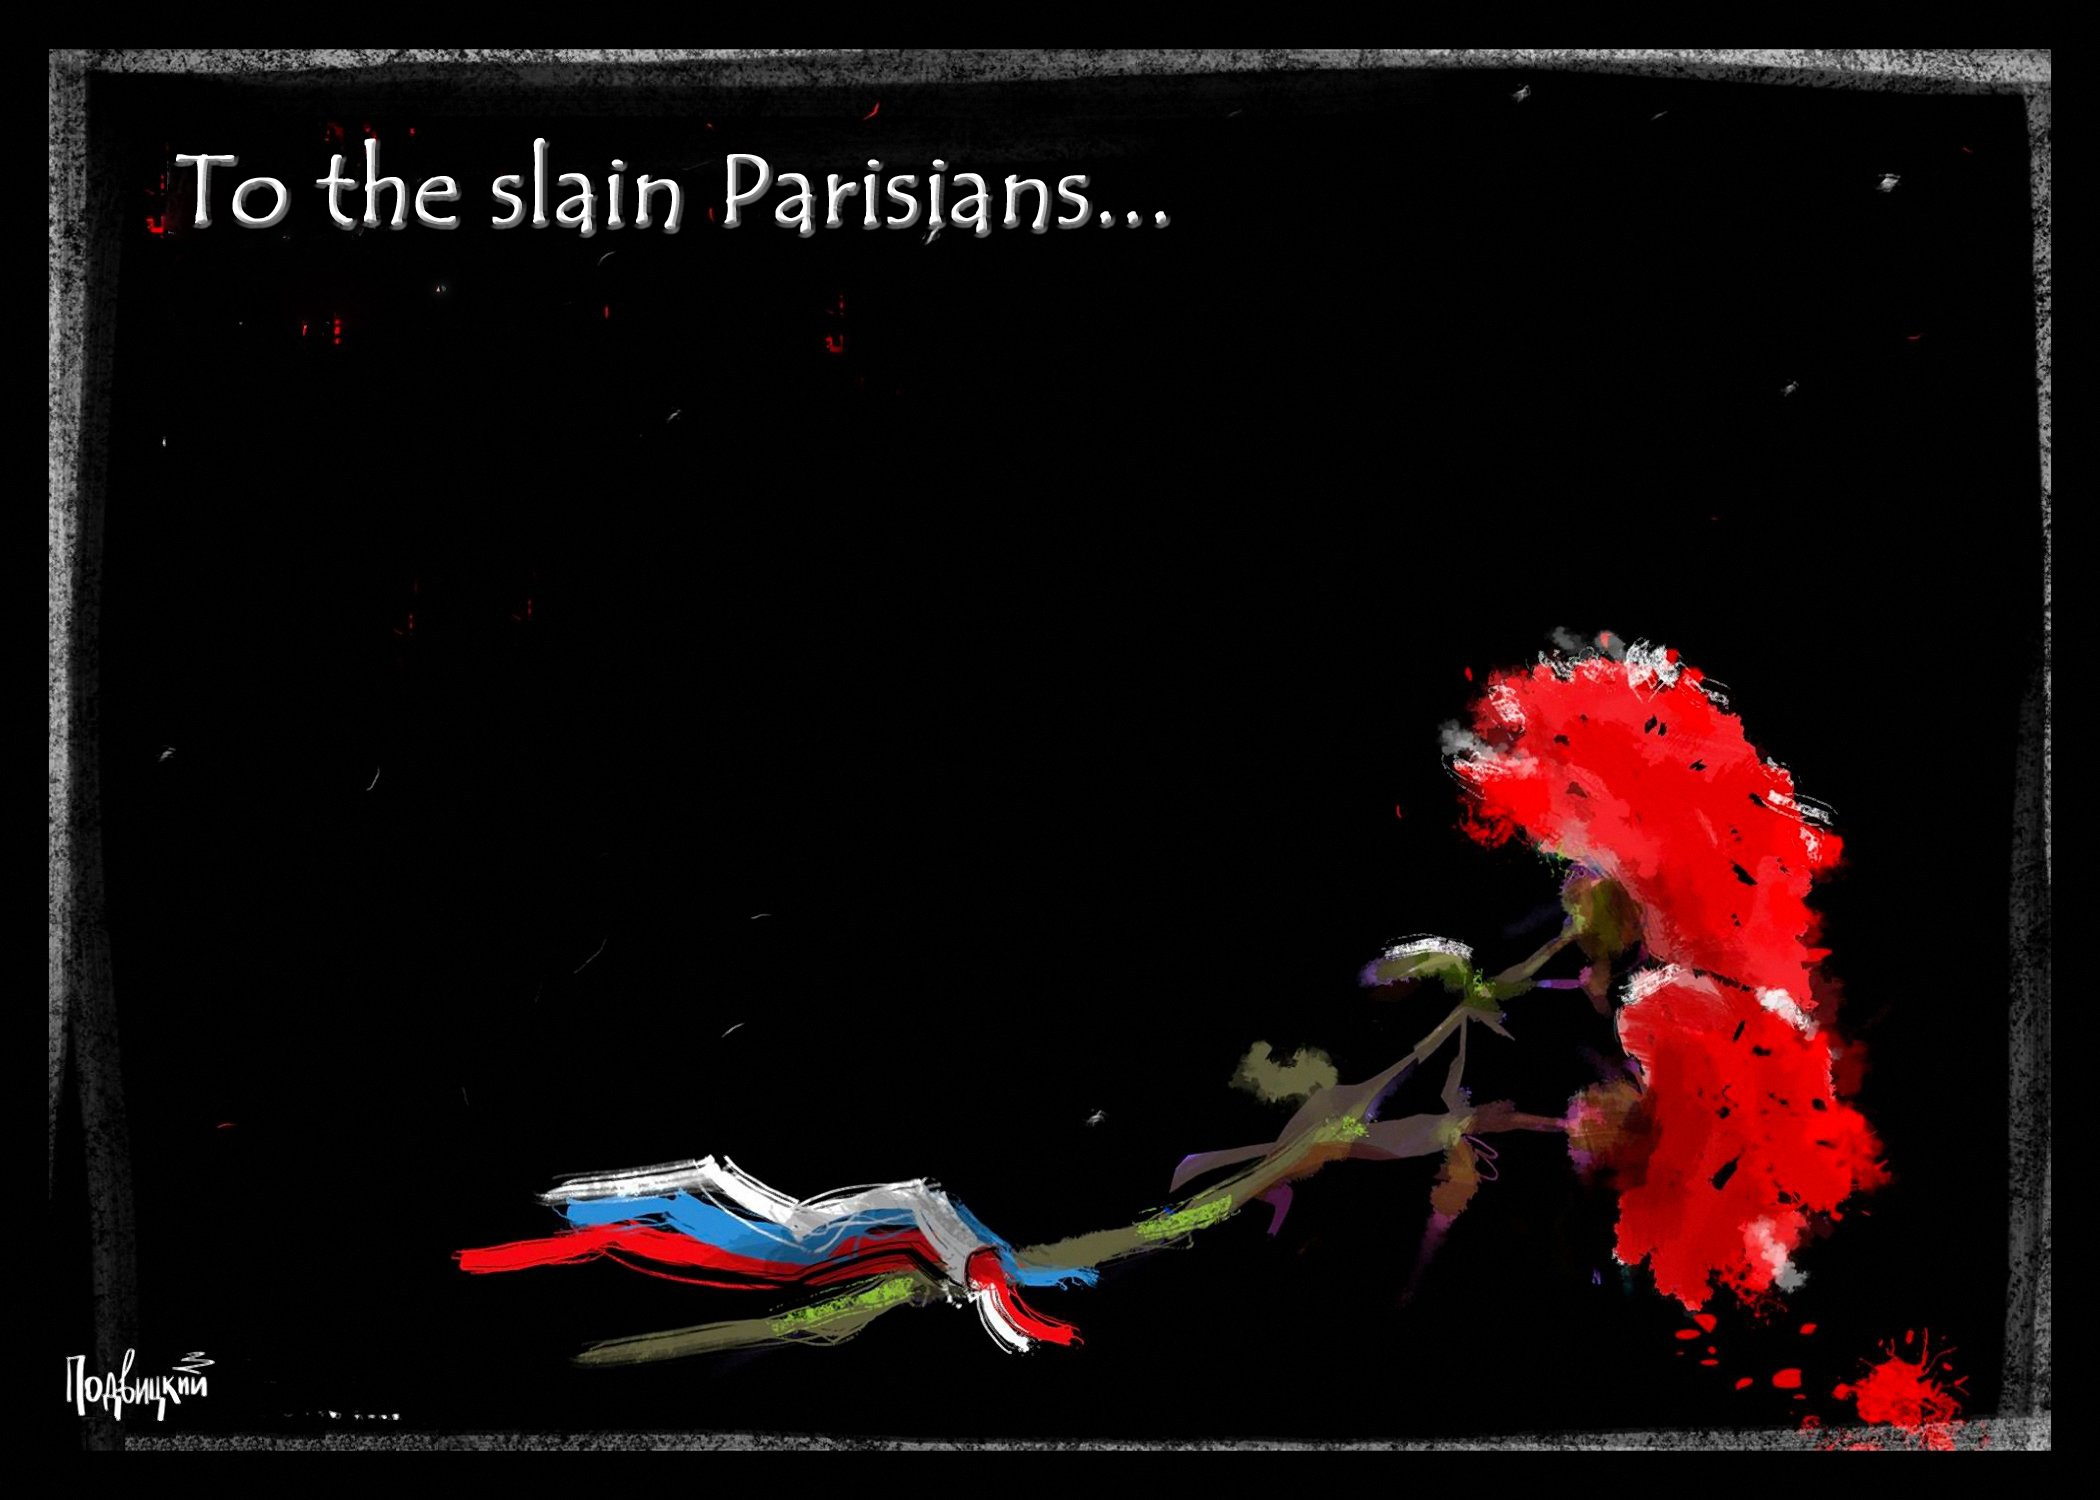 00 Vitaly Podvitsky. To the Slain Parisians. 2015